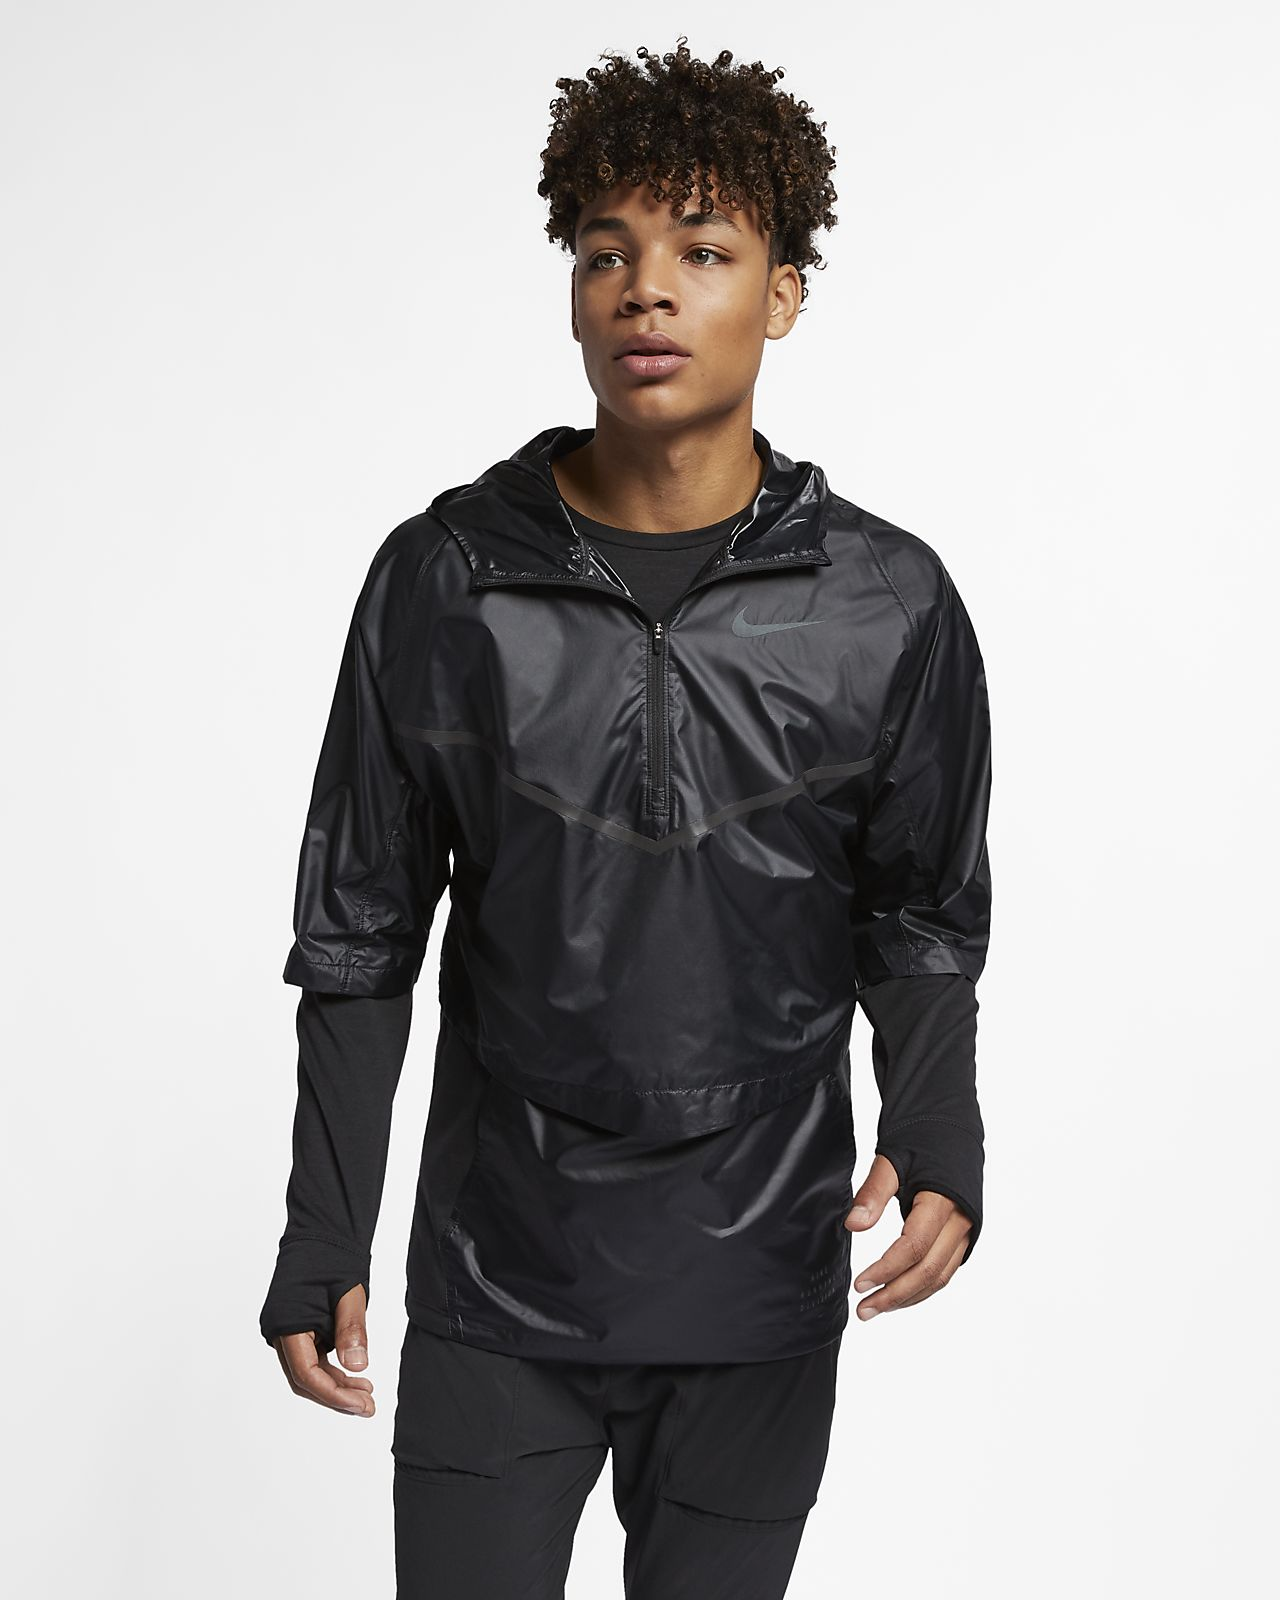 Nike Sphere Men's Transform Running Top